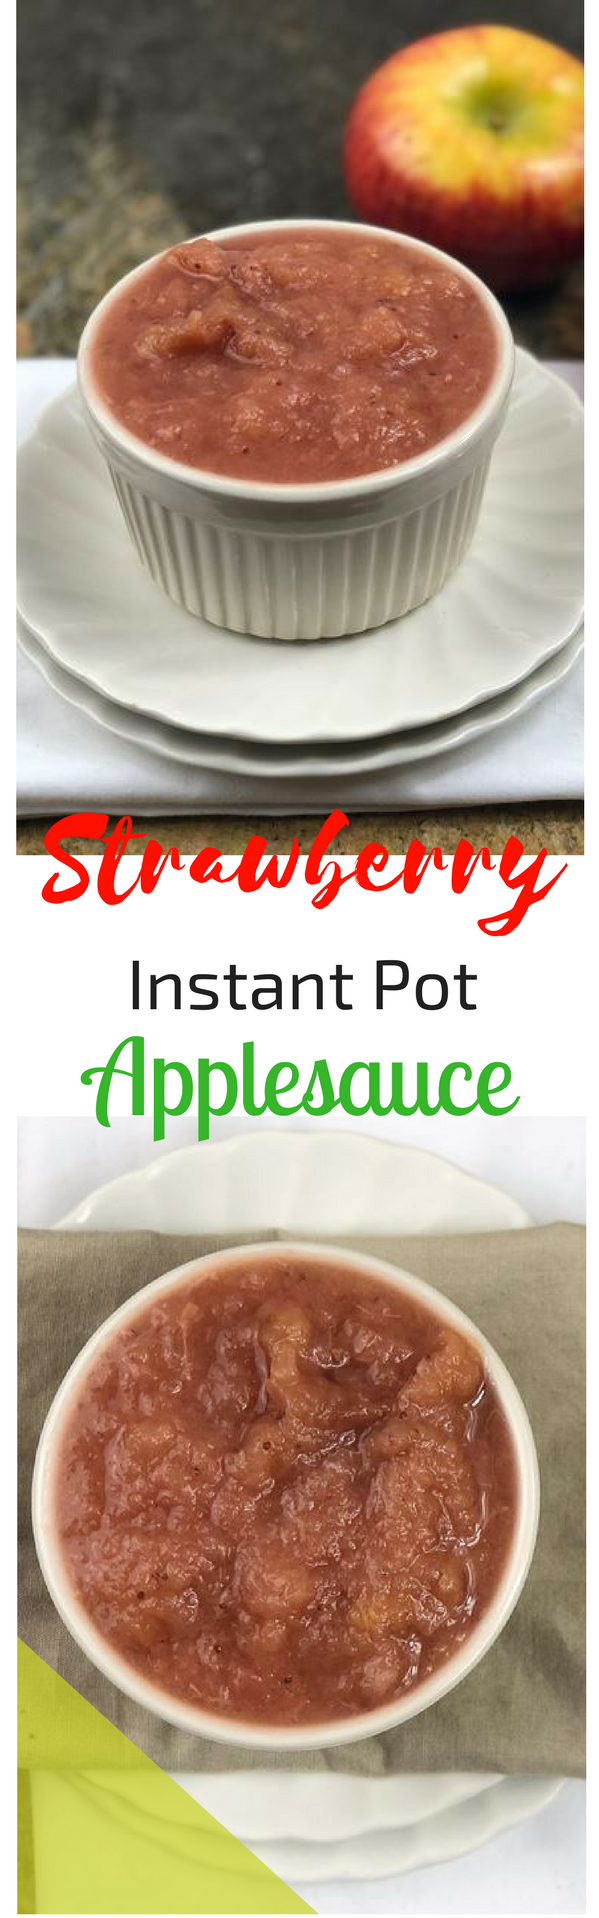 I love when apples go on sale and you can buy a surplus to have for our favorite recipes like apple pie, turnovers, and of course this strawberry applesauce. This strawberry Instant Pot applesauce is as simple as it gets. 2 ingredients gives you this perfectly sweet and smooth applesauce with a hint of tartness.